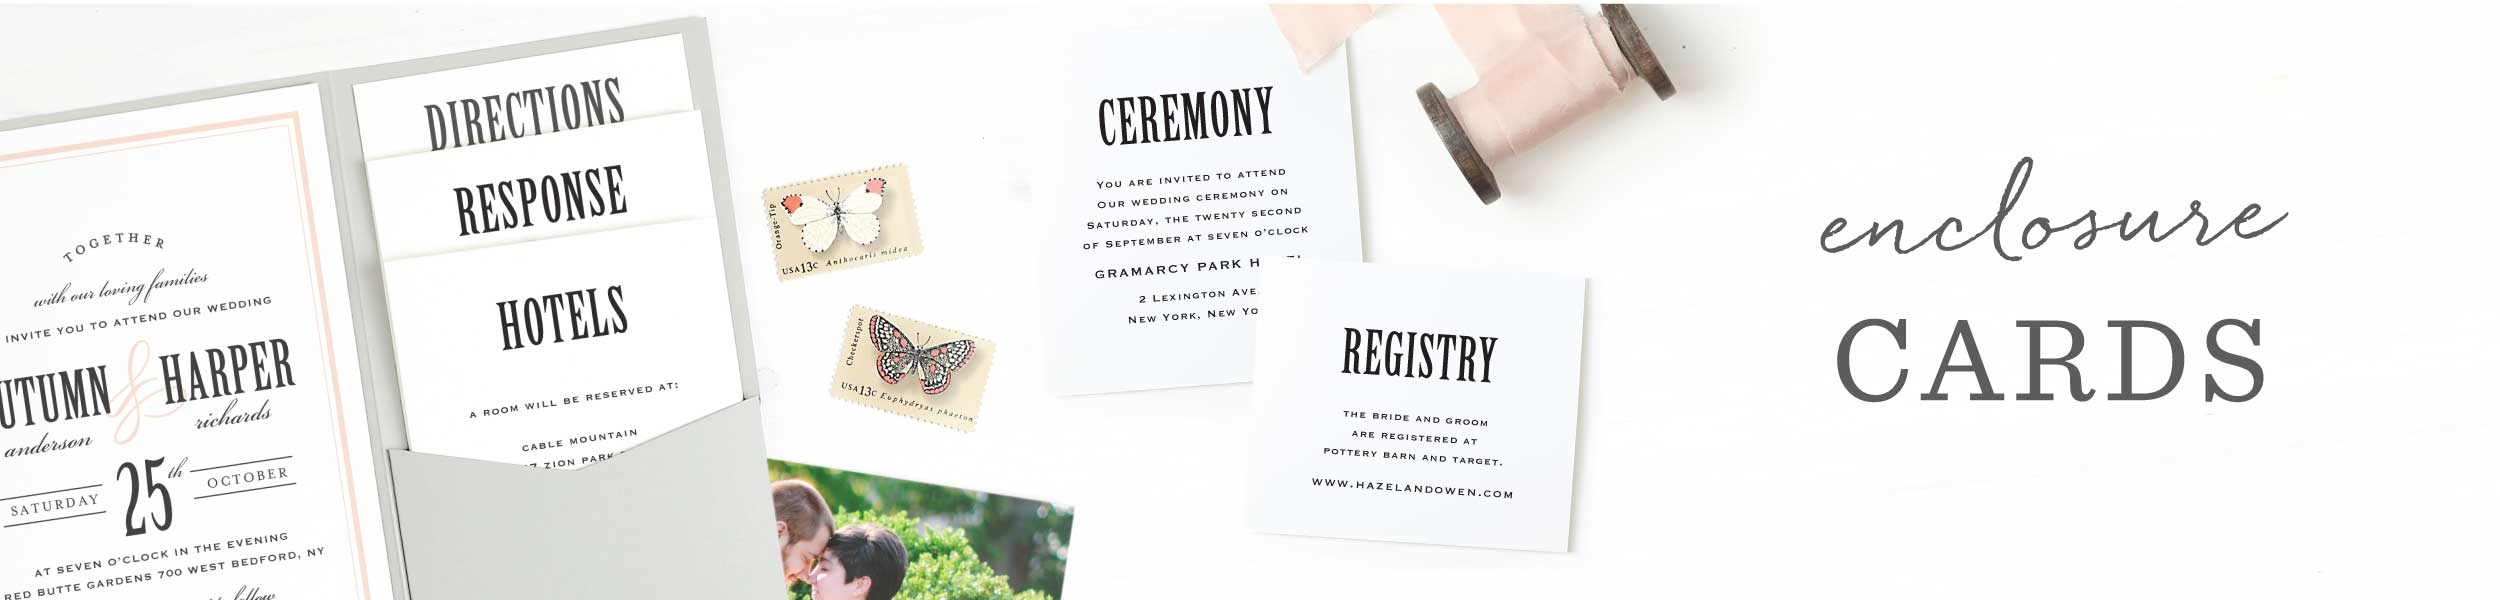 Wedding Enclosure Cards by Basic Invite